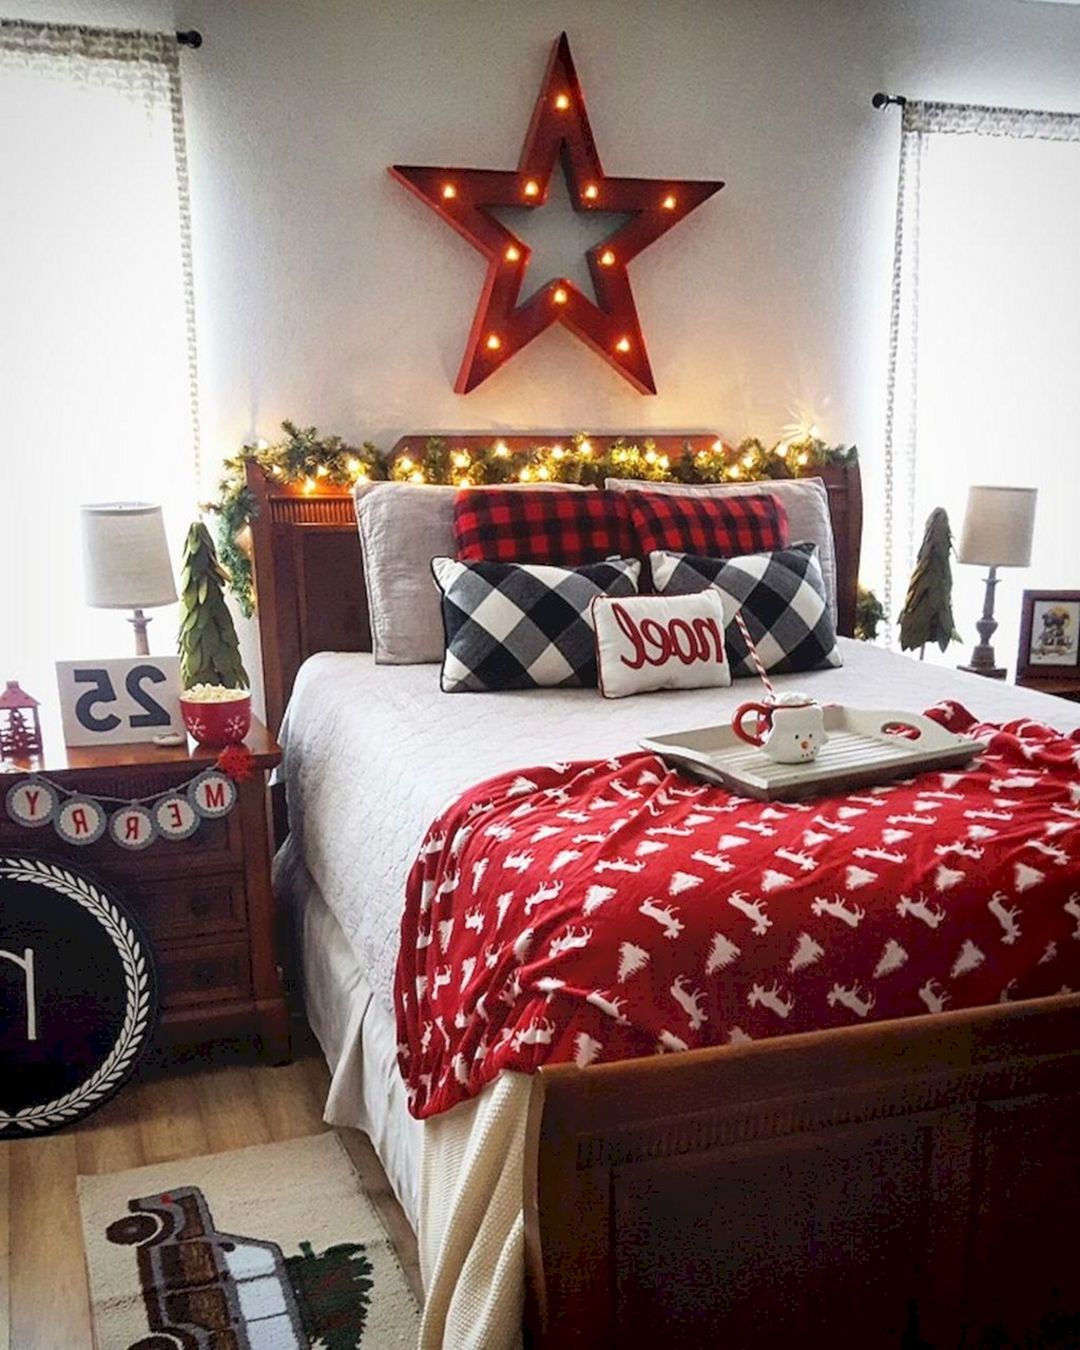 45 Adorable Interior Themed Christmas Bedroom Decorating